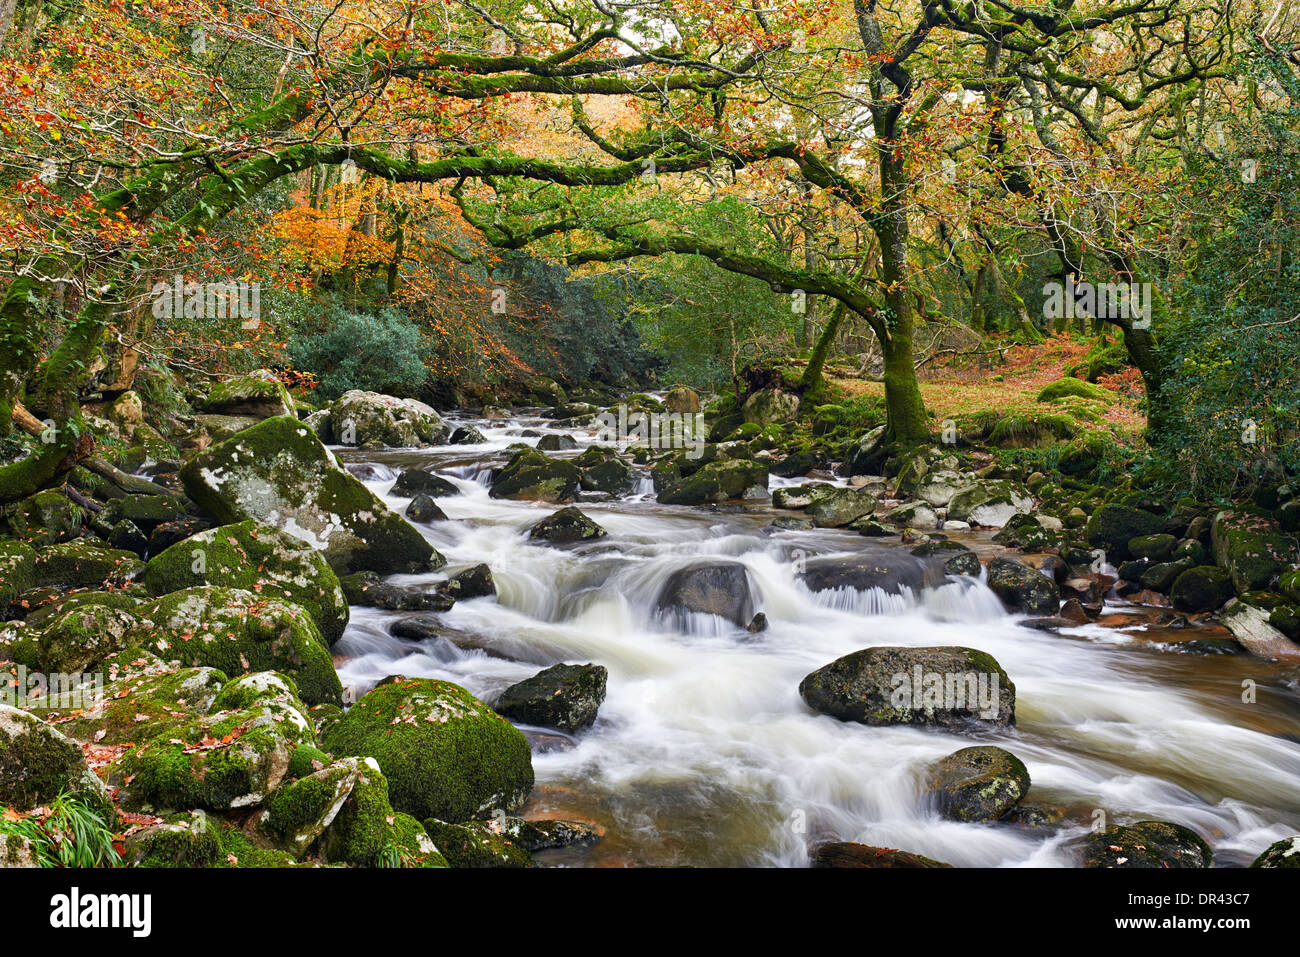 River Plym flowing through Dewerstone wood at Shaugh Prior, Dartmoor National Park - Stock Image